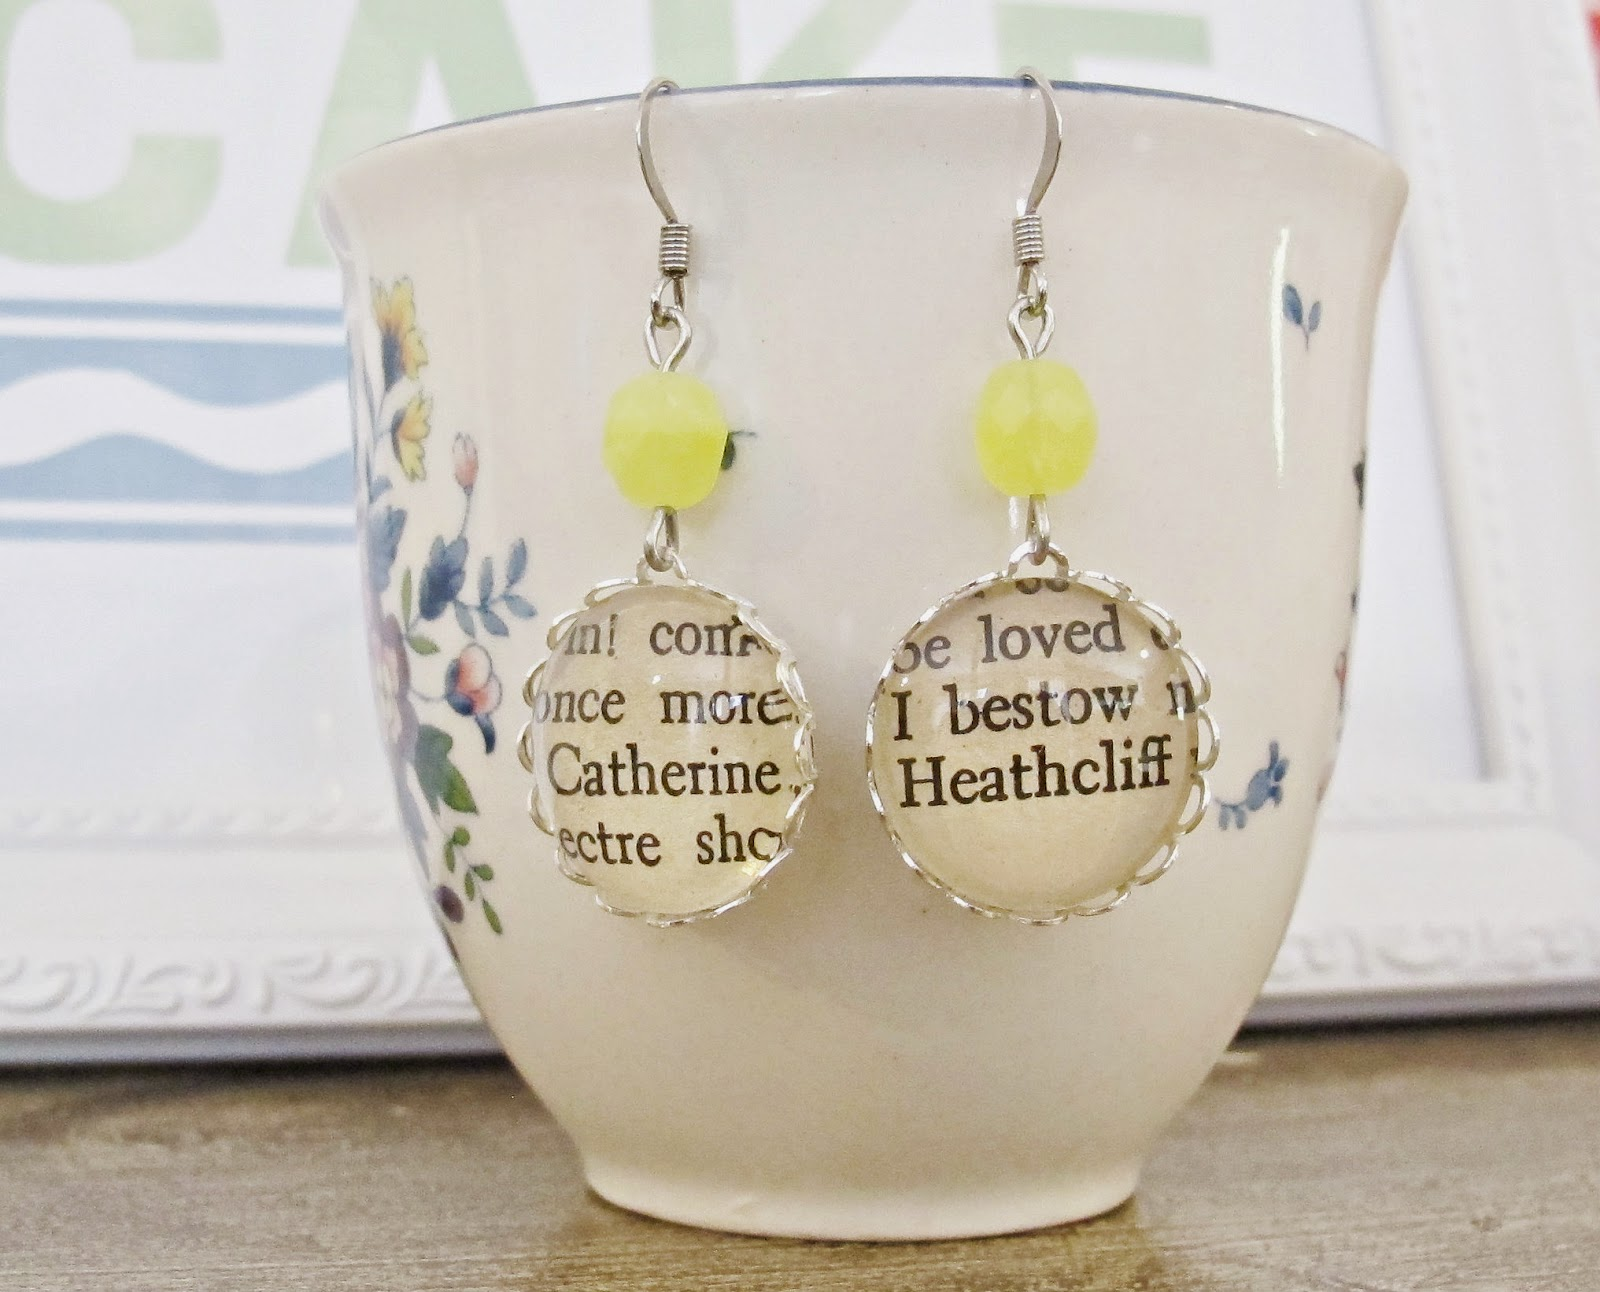 image earrings jewellery jewelry wuthering heights catherine earnshaw heathcliff romance love bronte two cheeky monkeys yellow literature